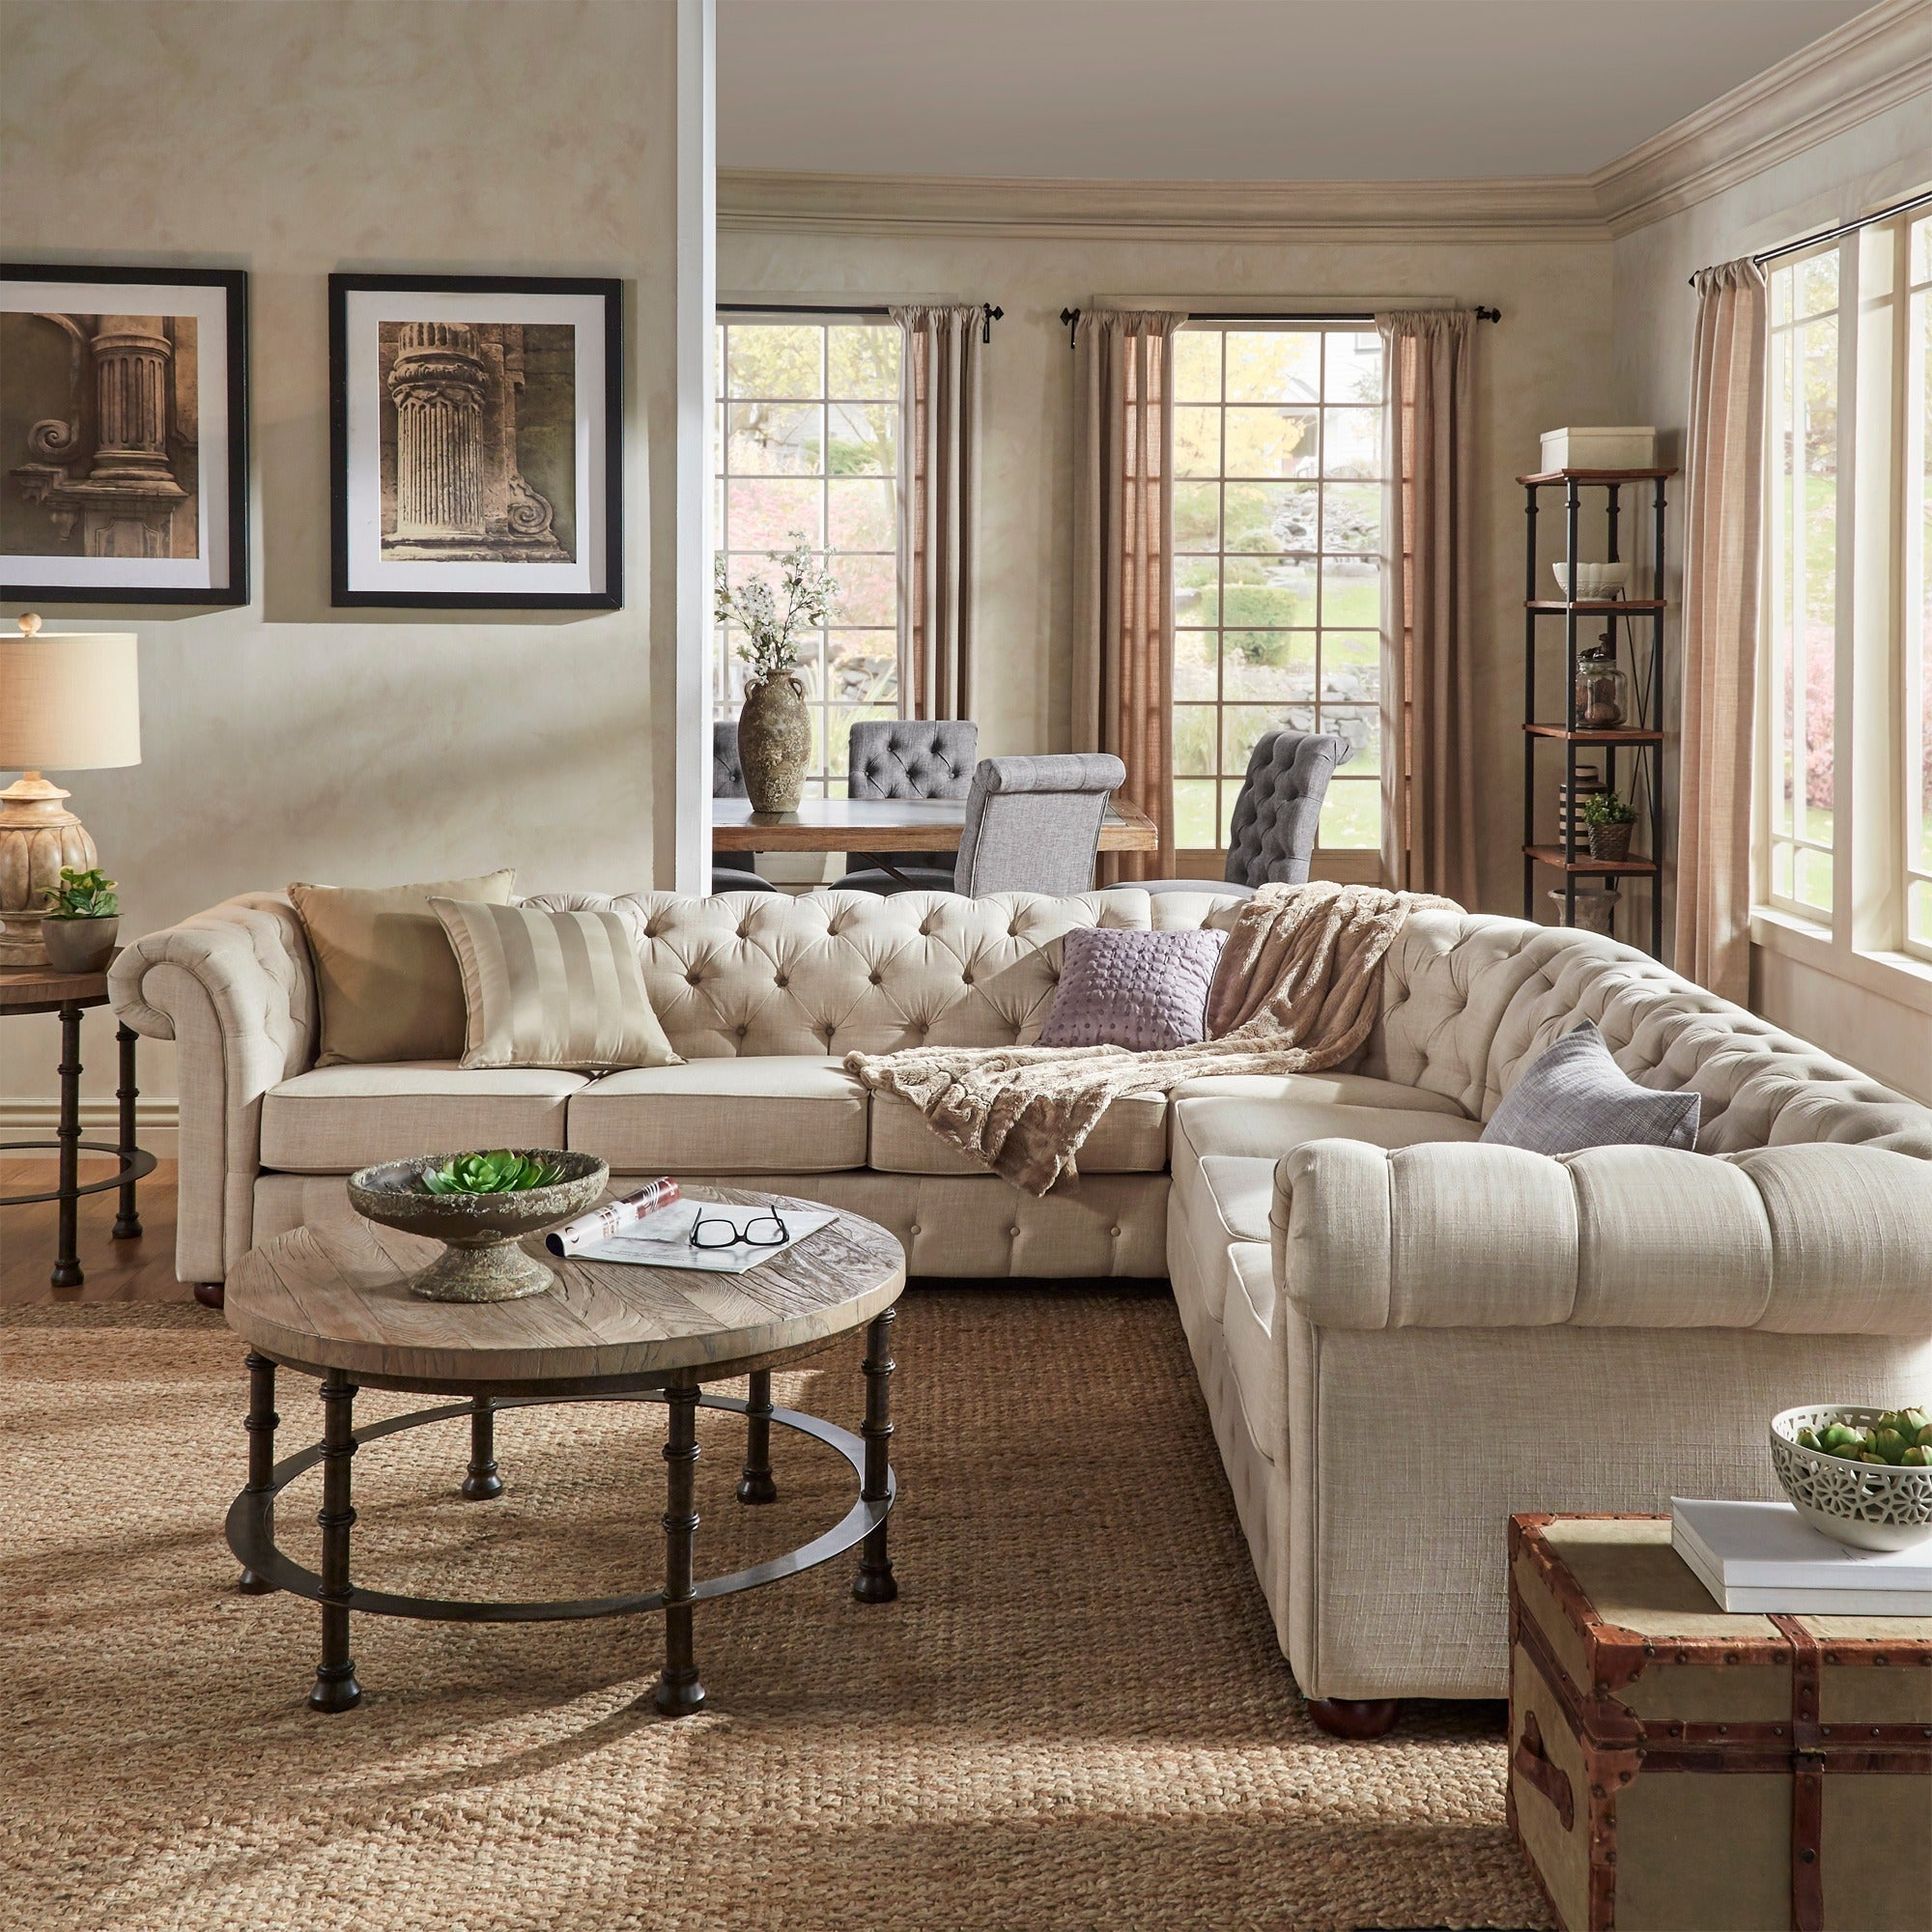 Knightsbridge Tufted Scroll Arm Chesterfield 7-seat L-shaped Sectional by  iNSPIRE Q Artisan - Free Shipping Today - Overstock.com - 17755614